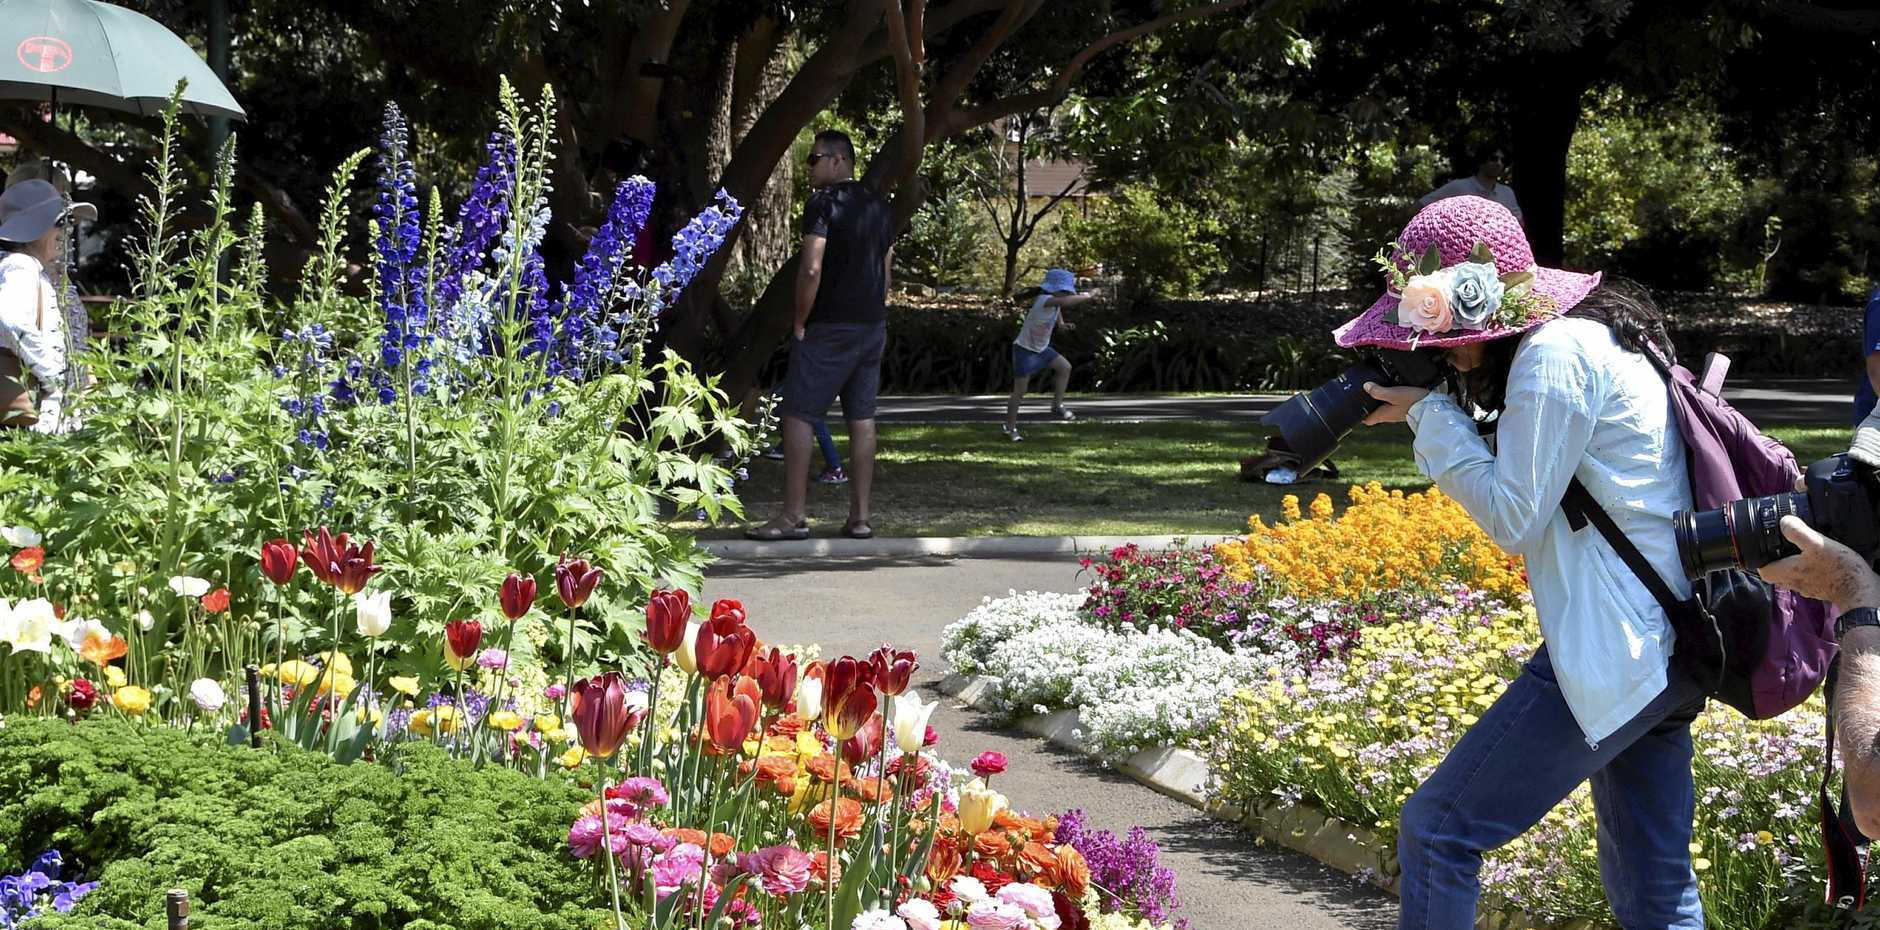 BEST EVENT: Visitors taking in the stunning flowers at Queens Park during last year's Toowoomba Carnival of Flowers.